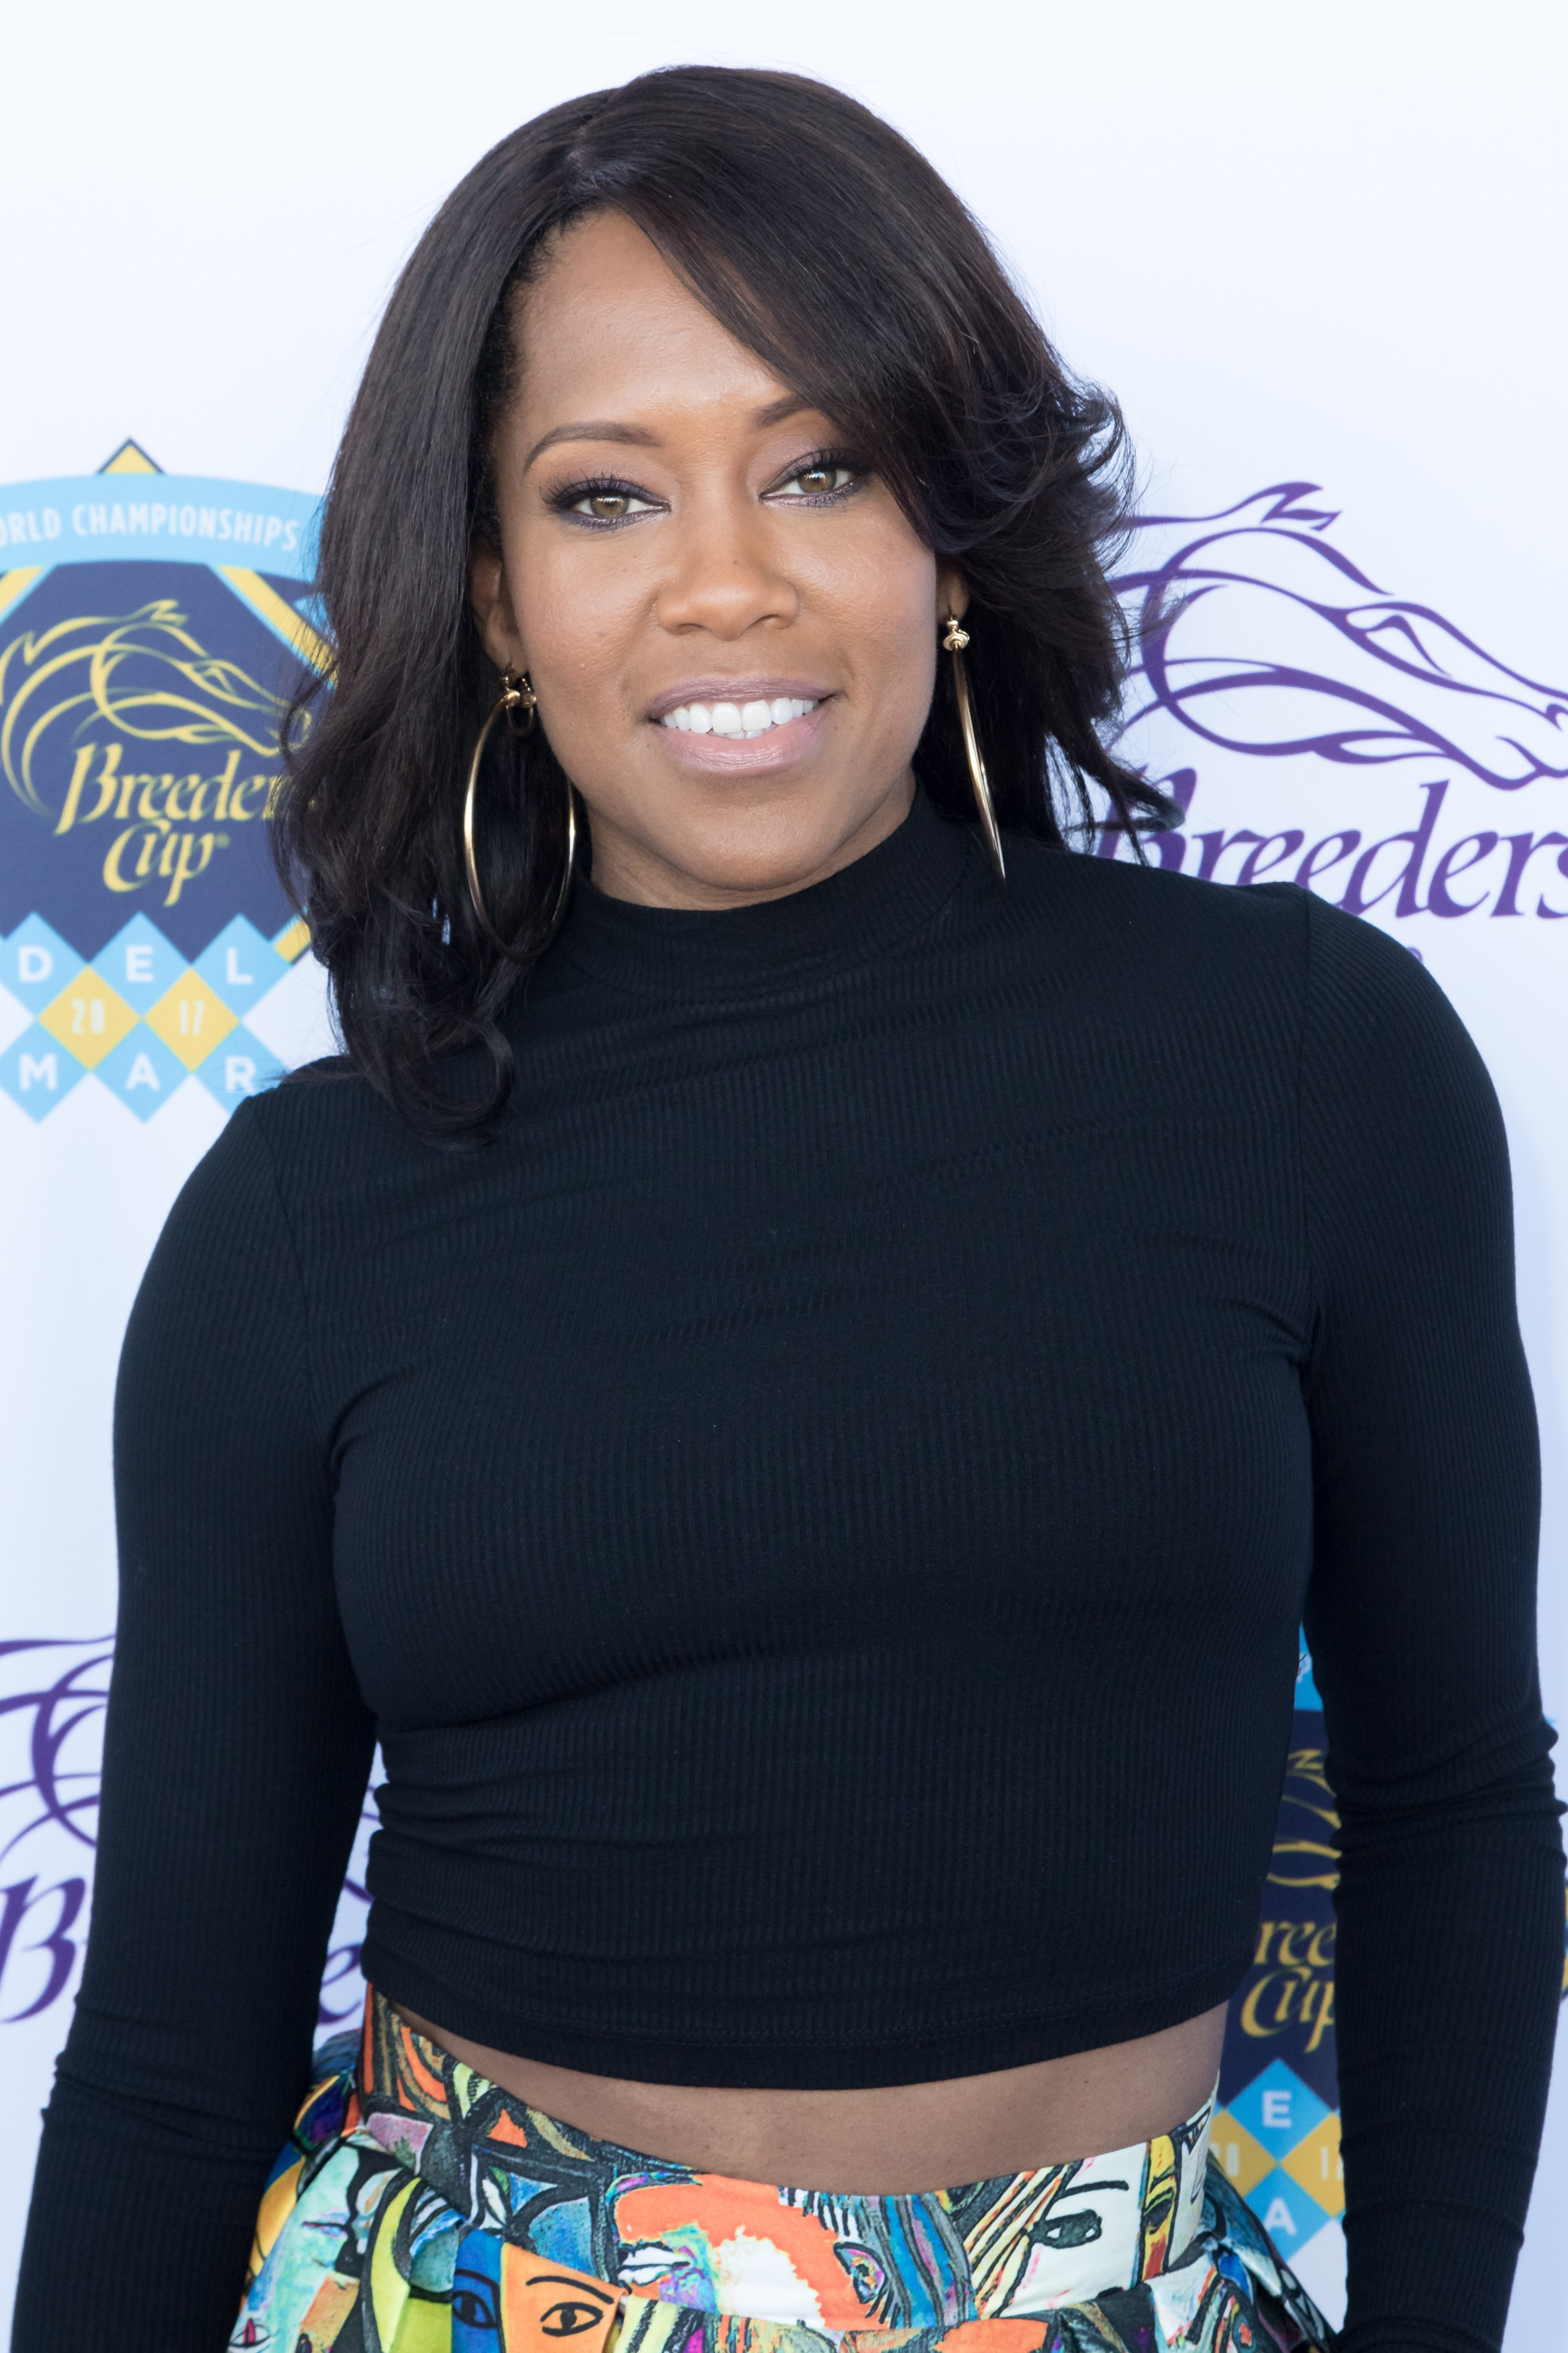 Regina King during the 2017 Breeders' Cup World Championship. | Source: Getty Images